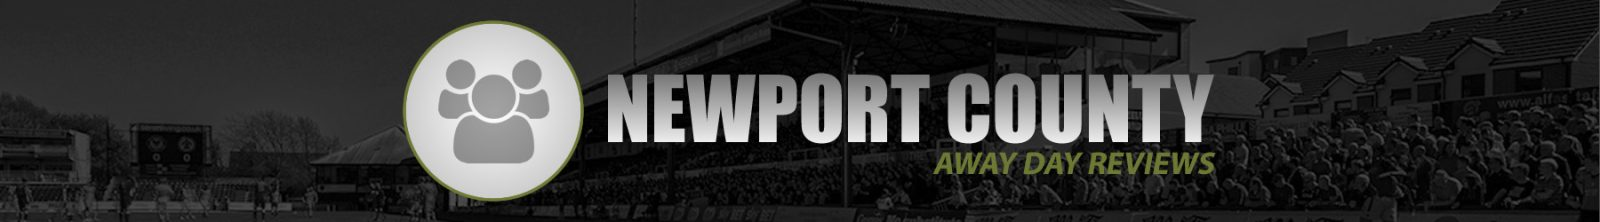 Review Newport County